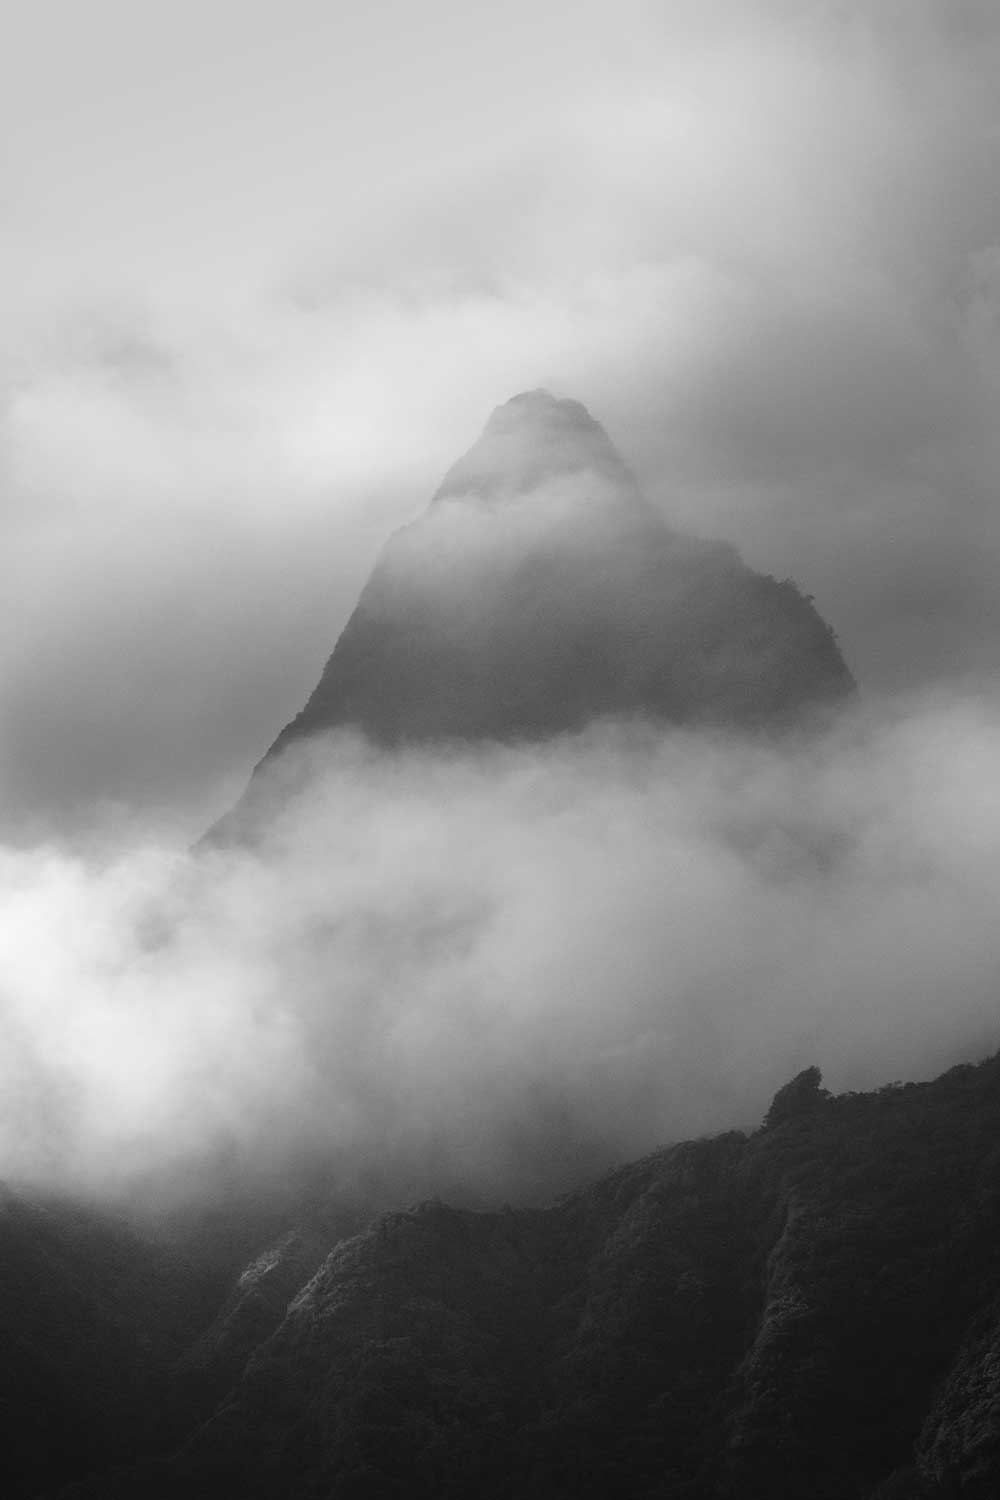 Black and white image of a single peak amongst the Koolau mountain range